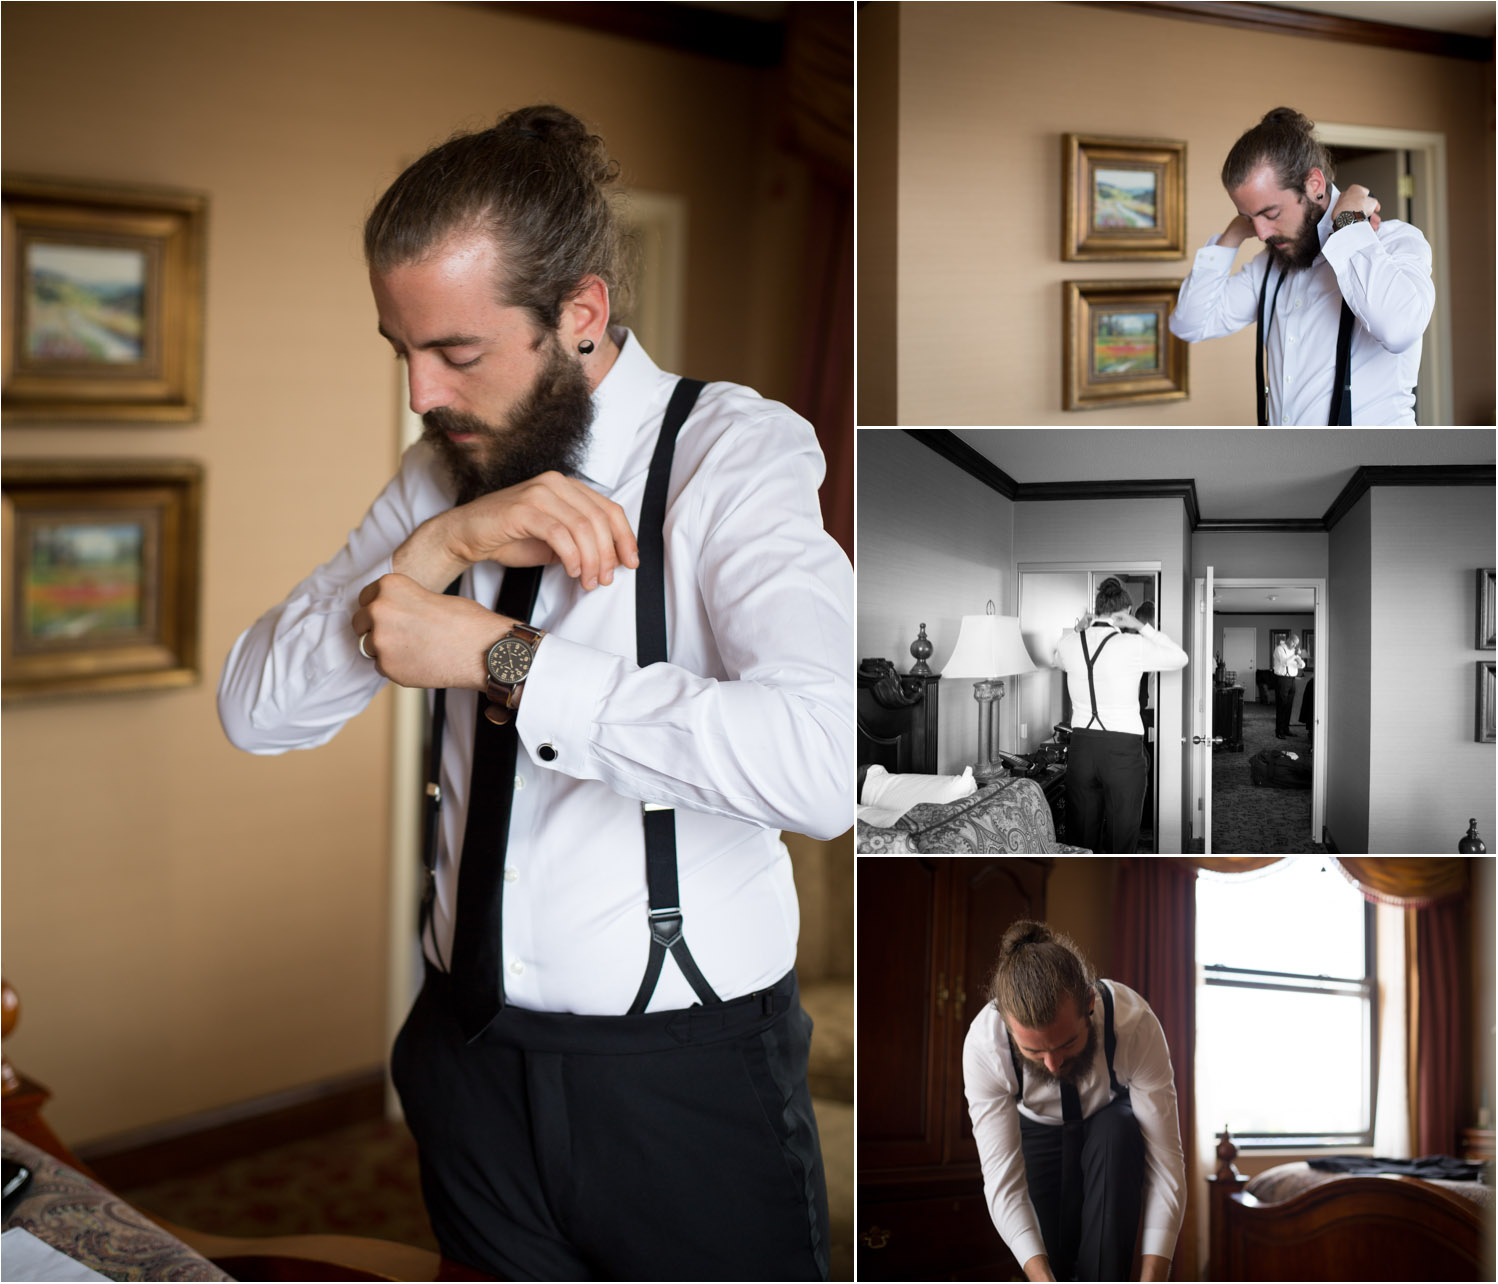 Pat got ready with his groomsmen at the Historic St. Paul Hotel across the street.